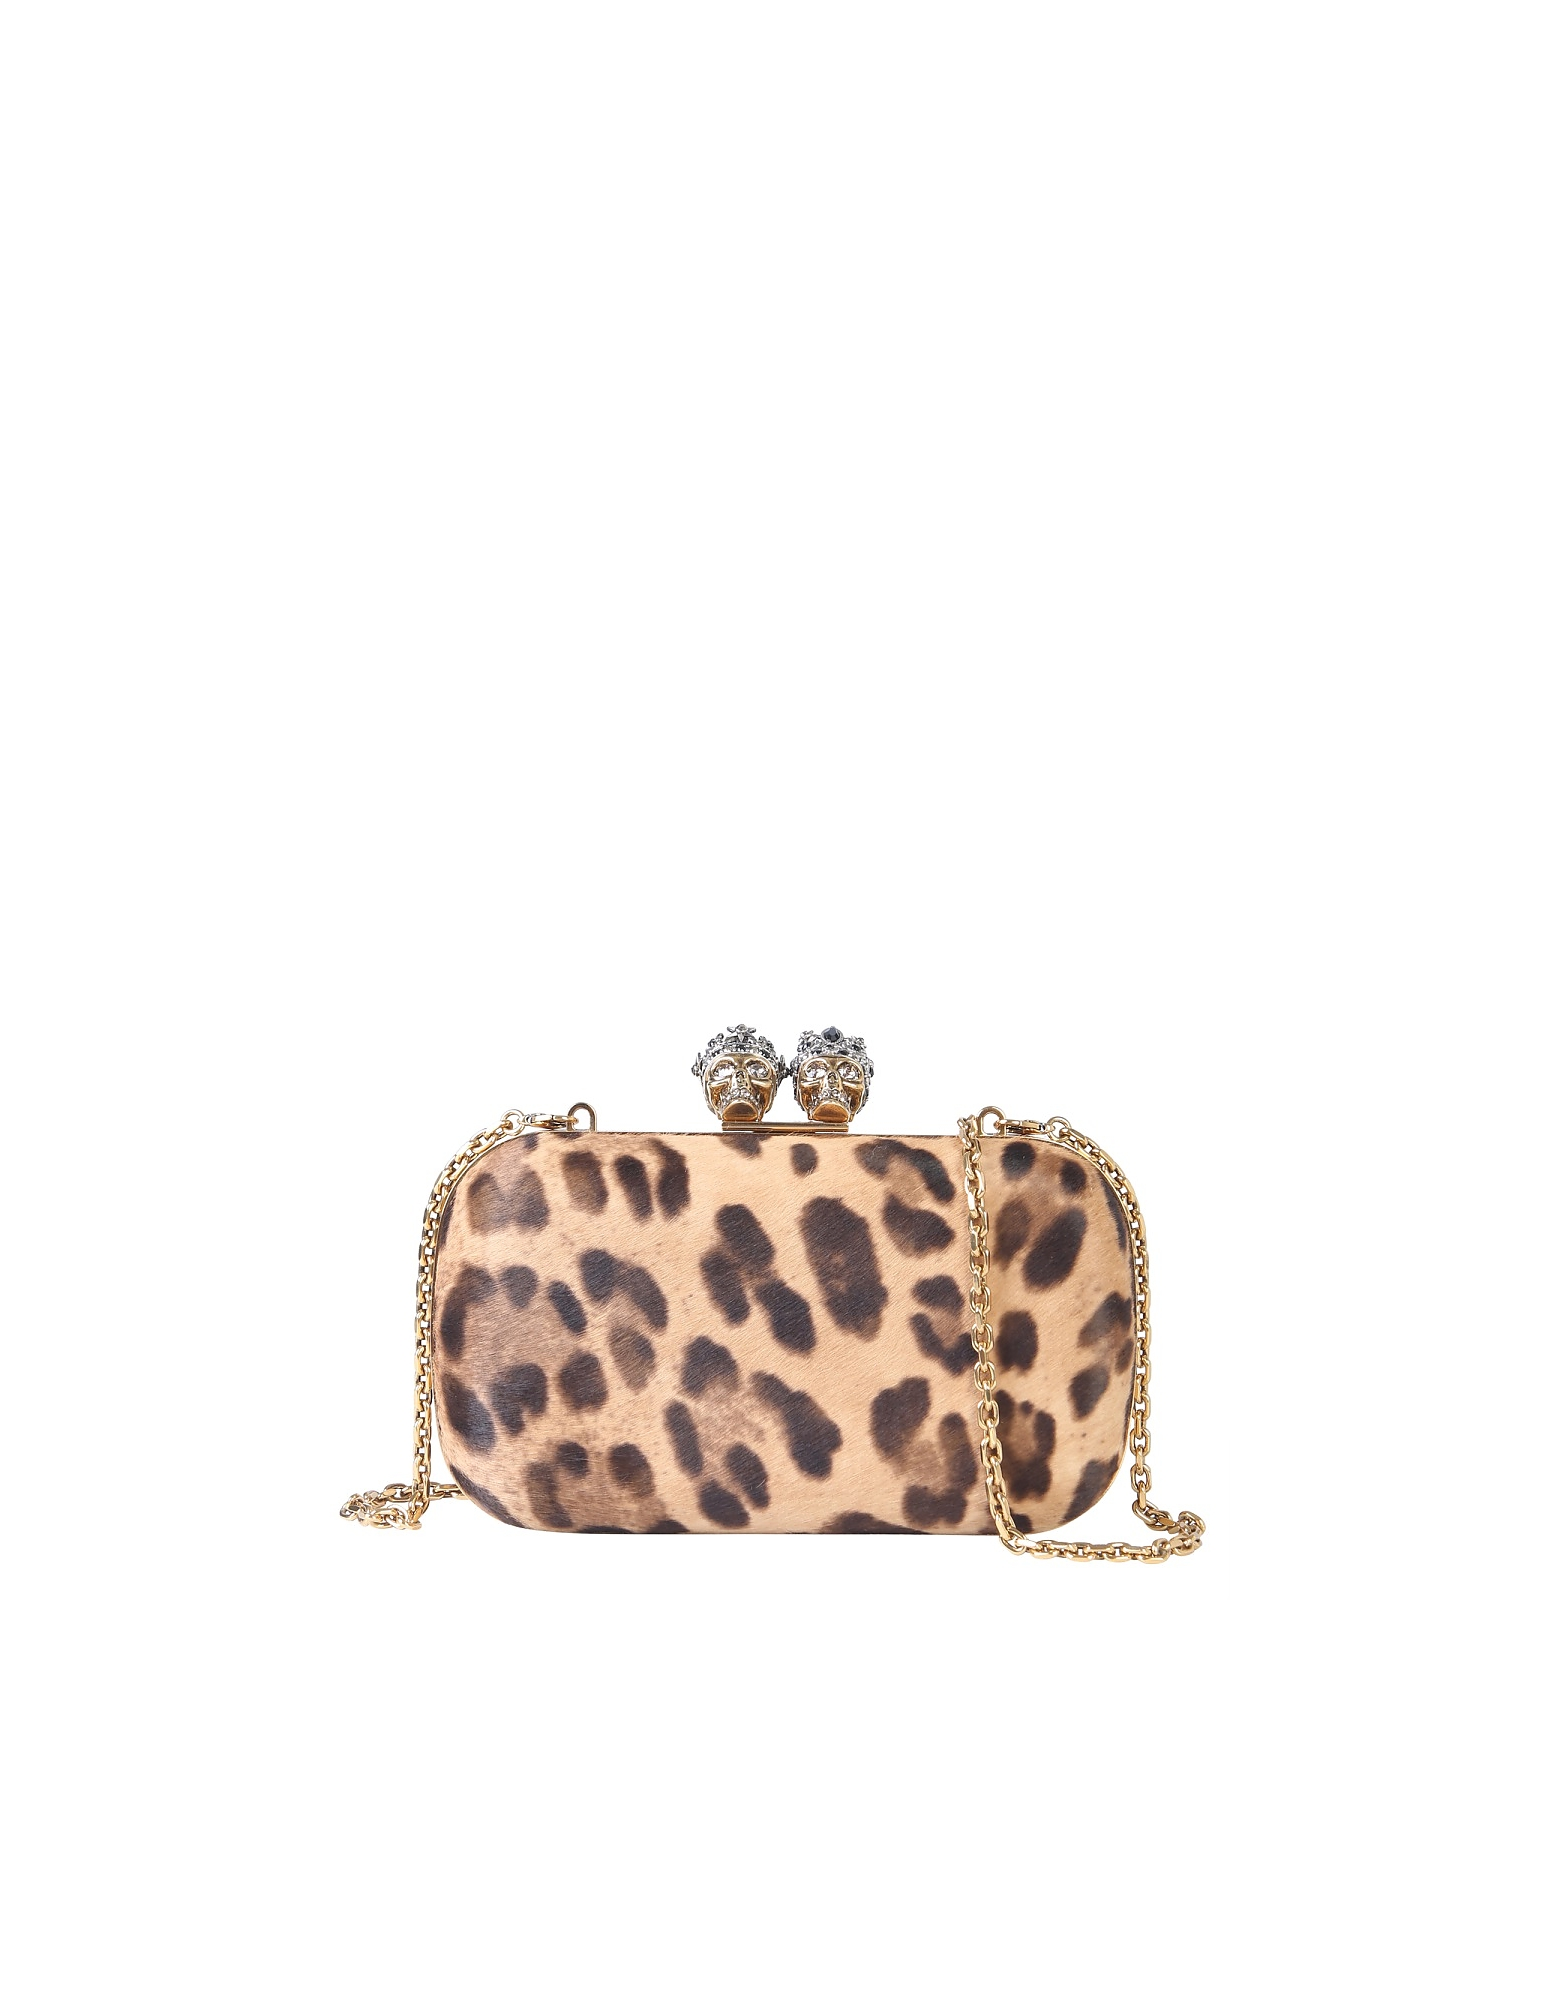 Alexander McQueen Designer Handbags, Queen And King Skull Clutch